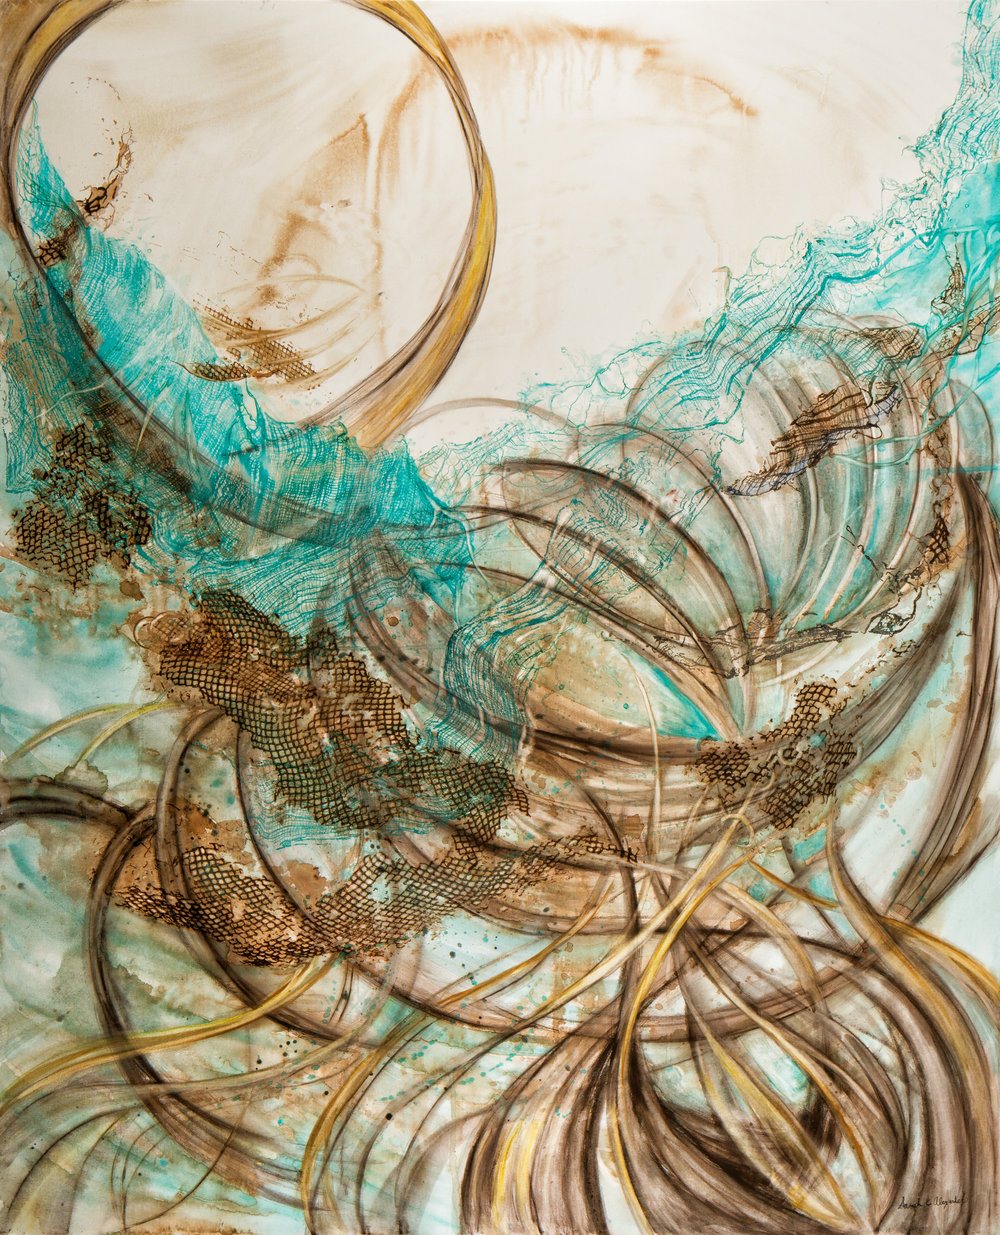 Sarah Alexander, In Flux , Watercolor, Charcoal and Ink on Canvas, $4,000